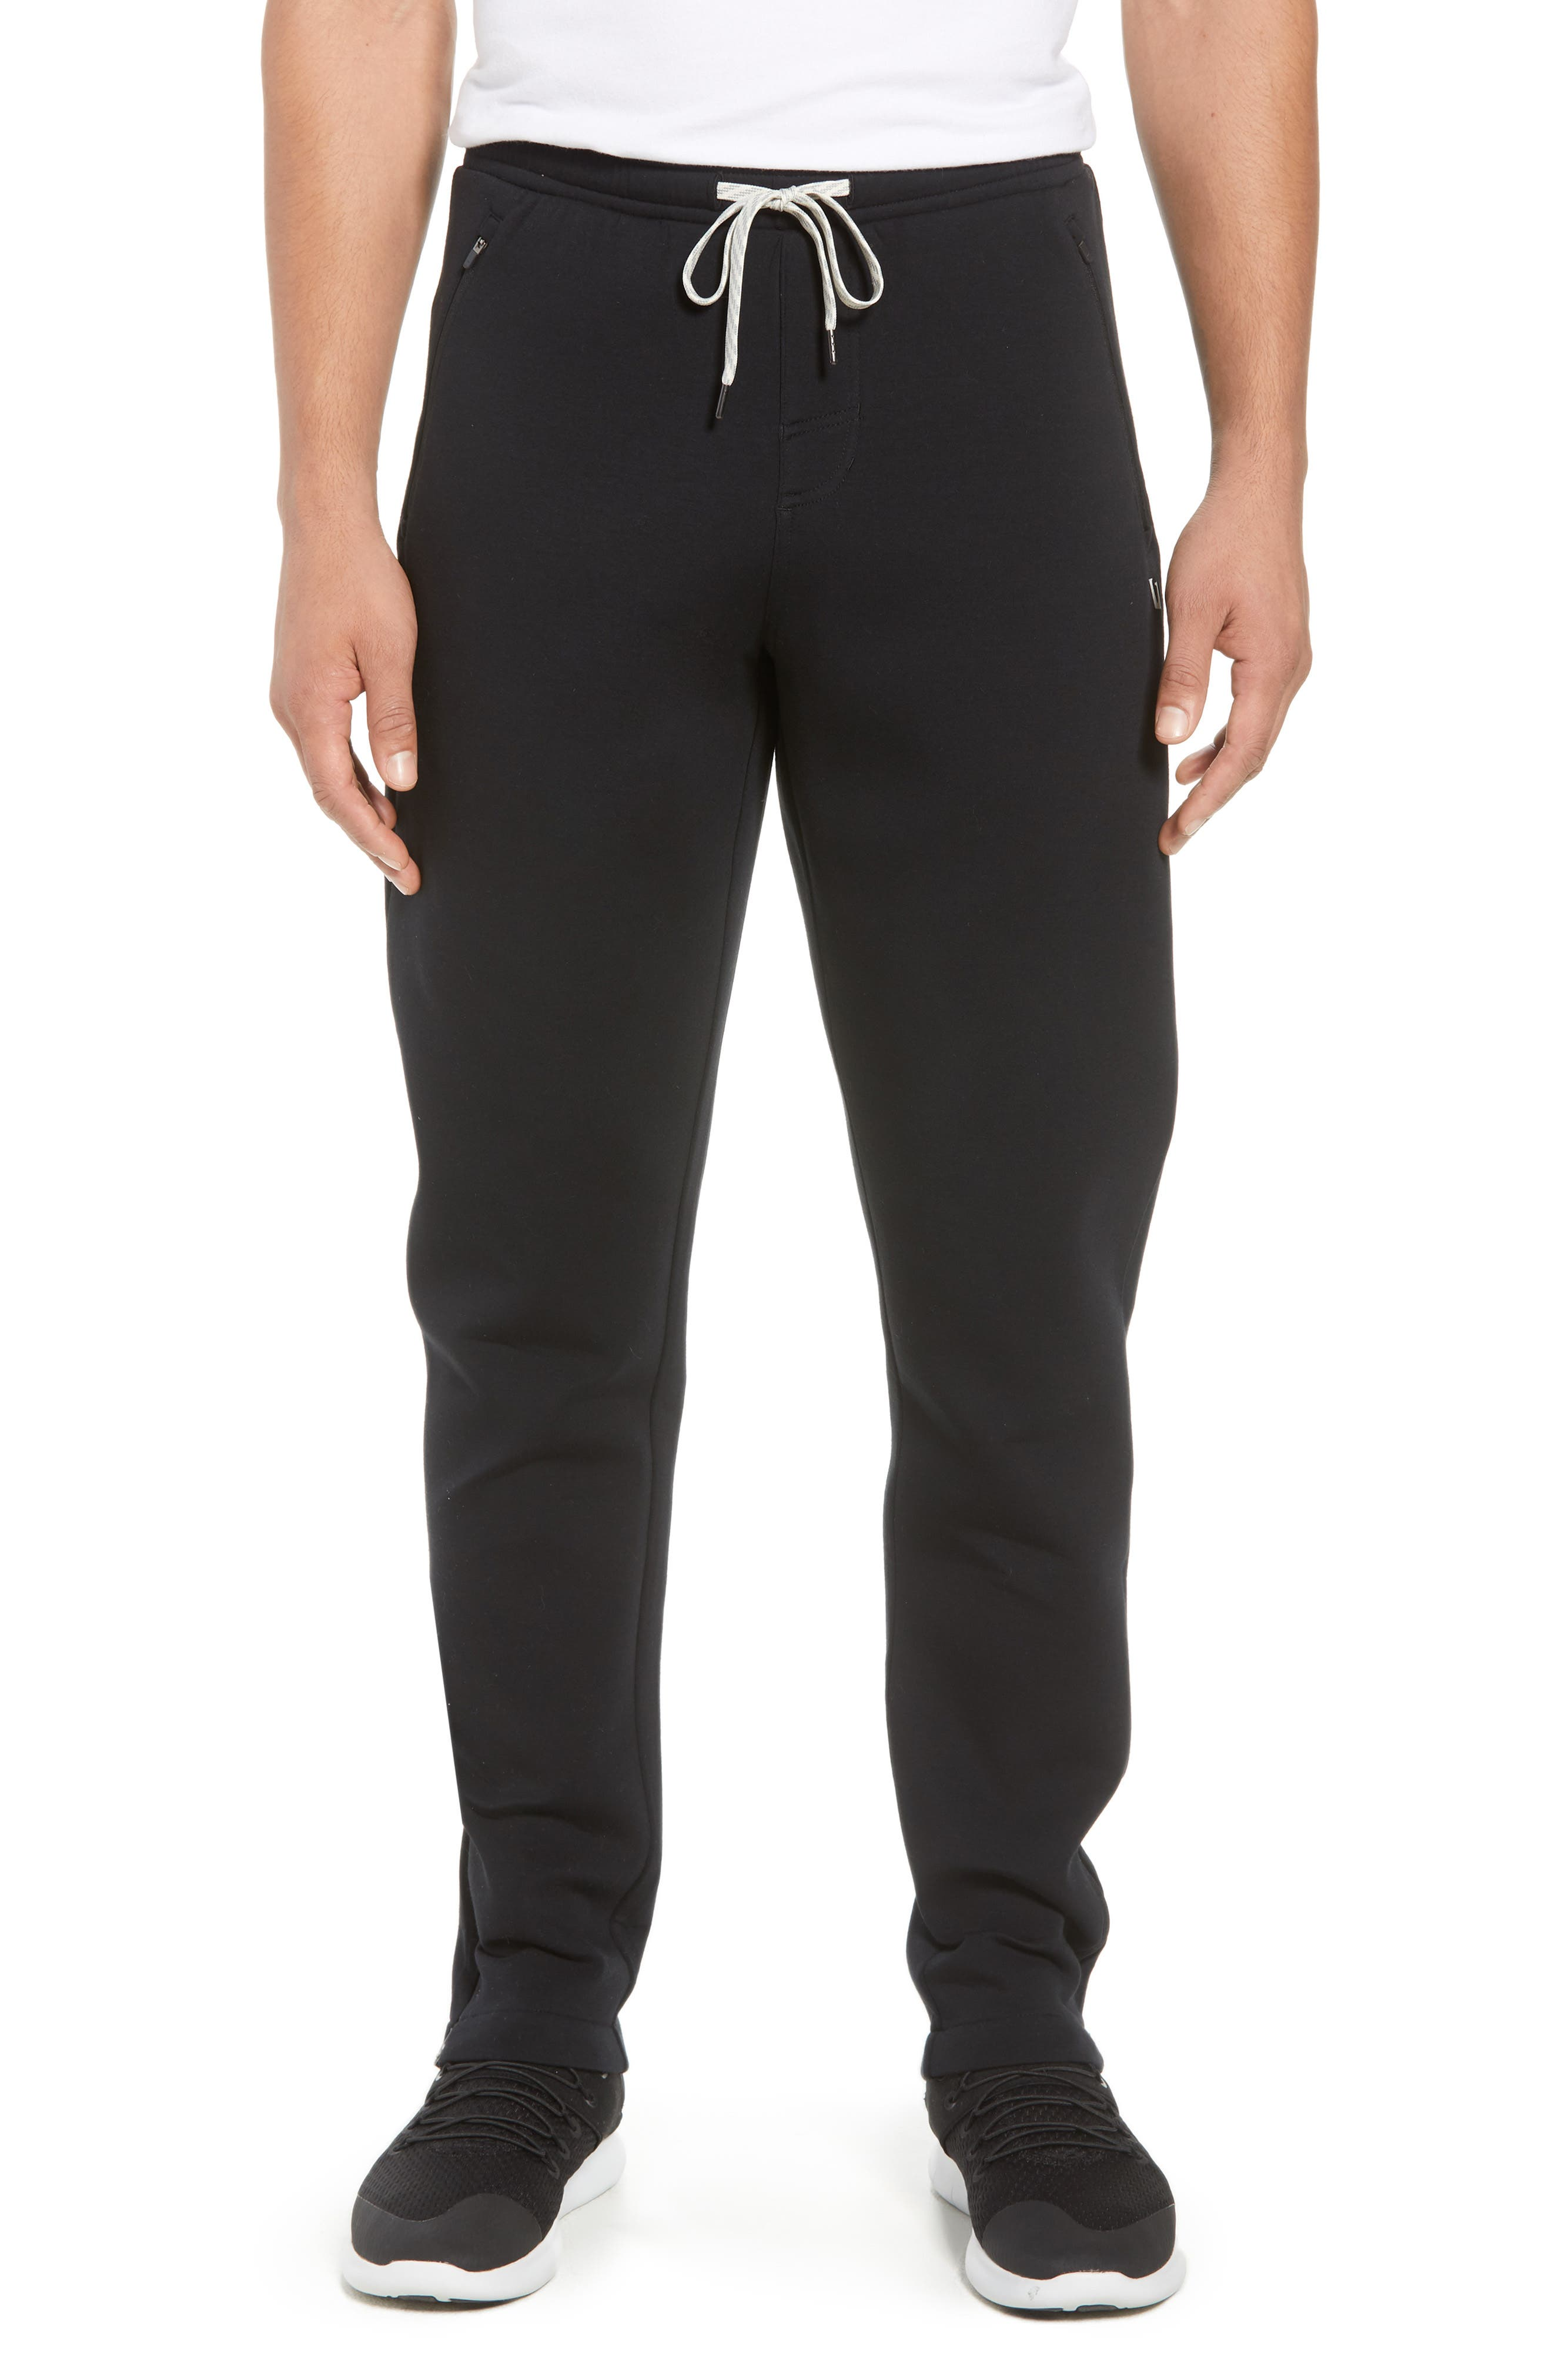 Cosmos Performance Lounge Pants,                         Main,                         color, BLACK